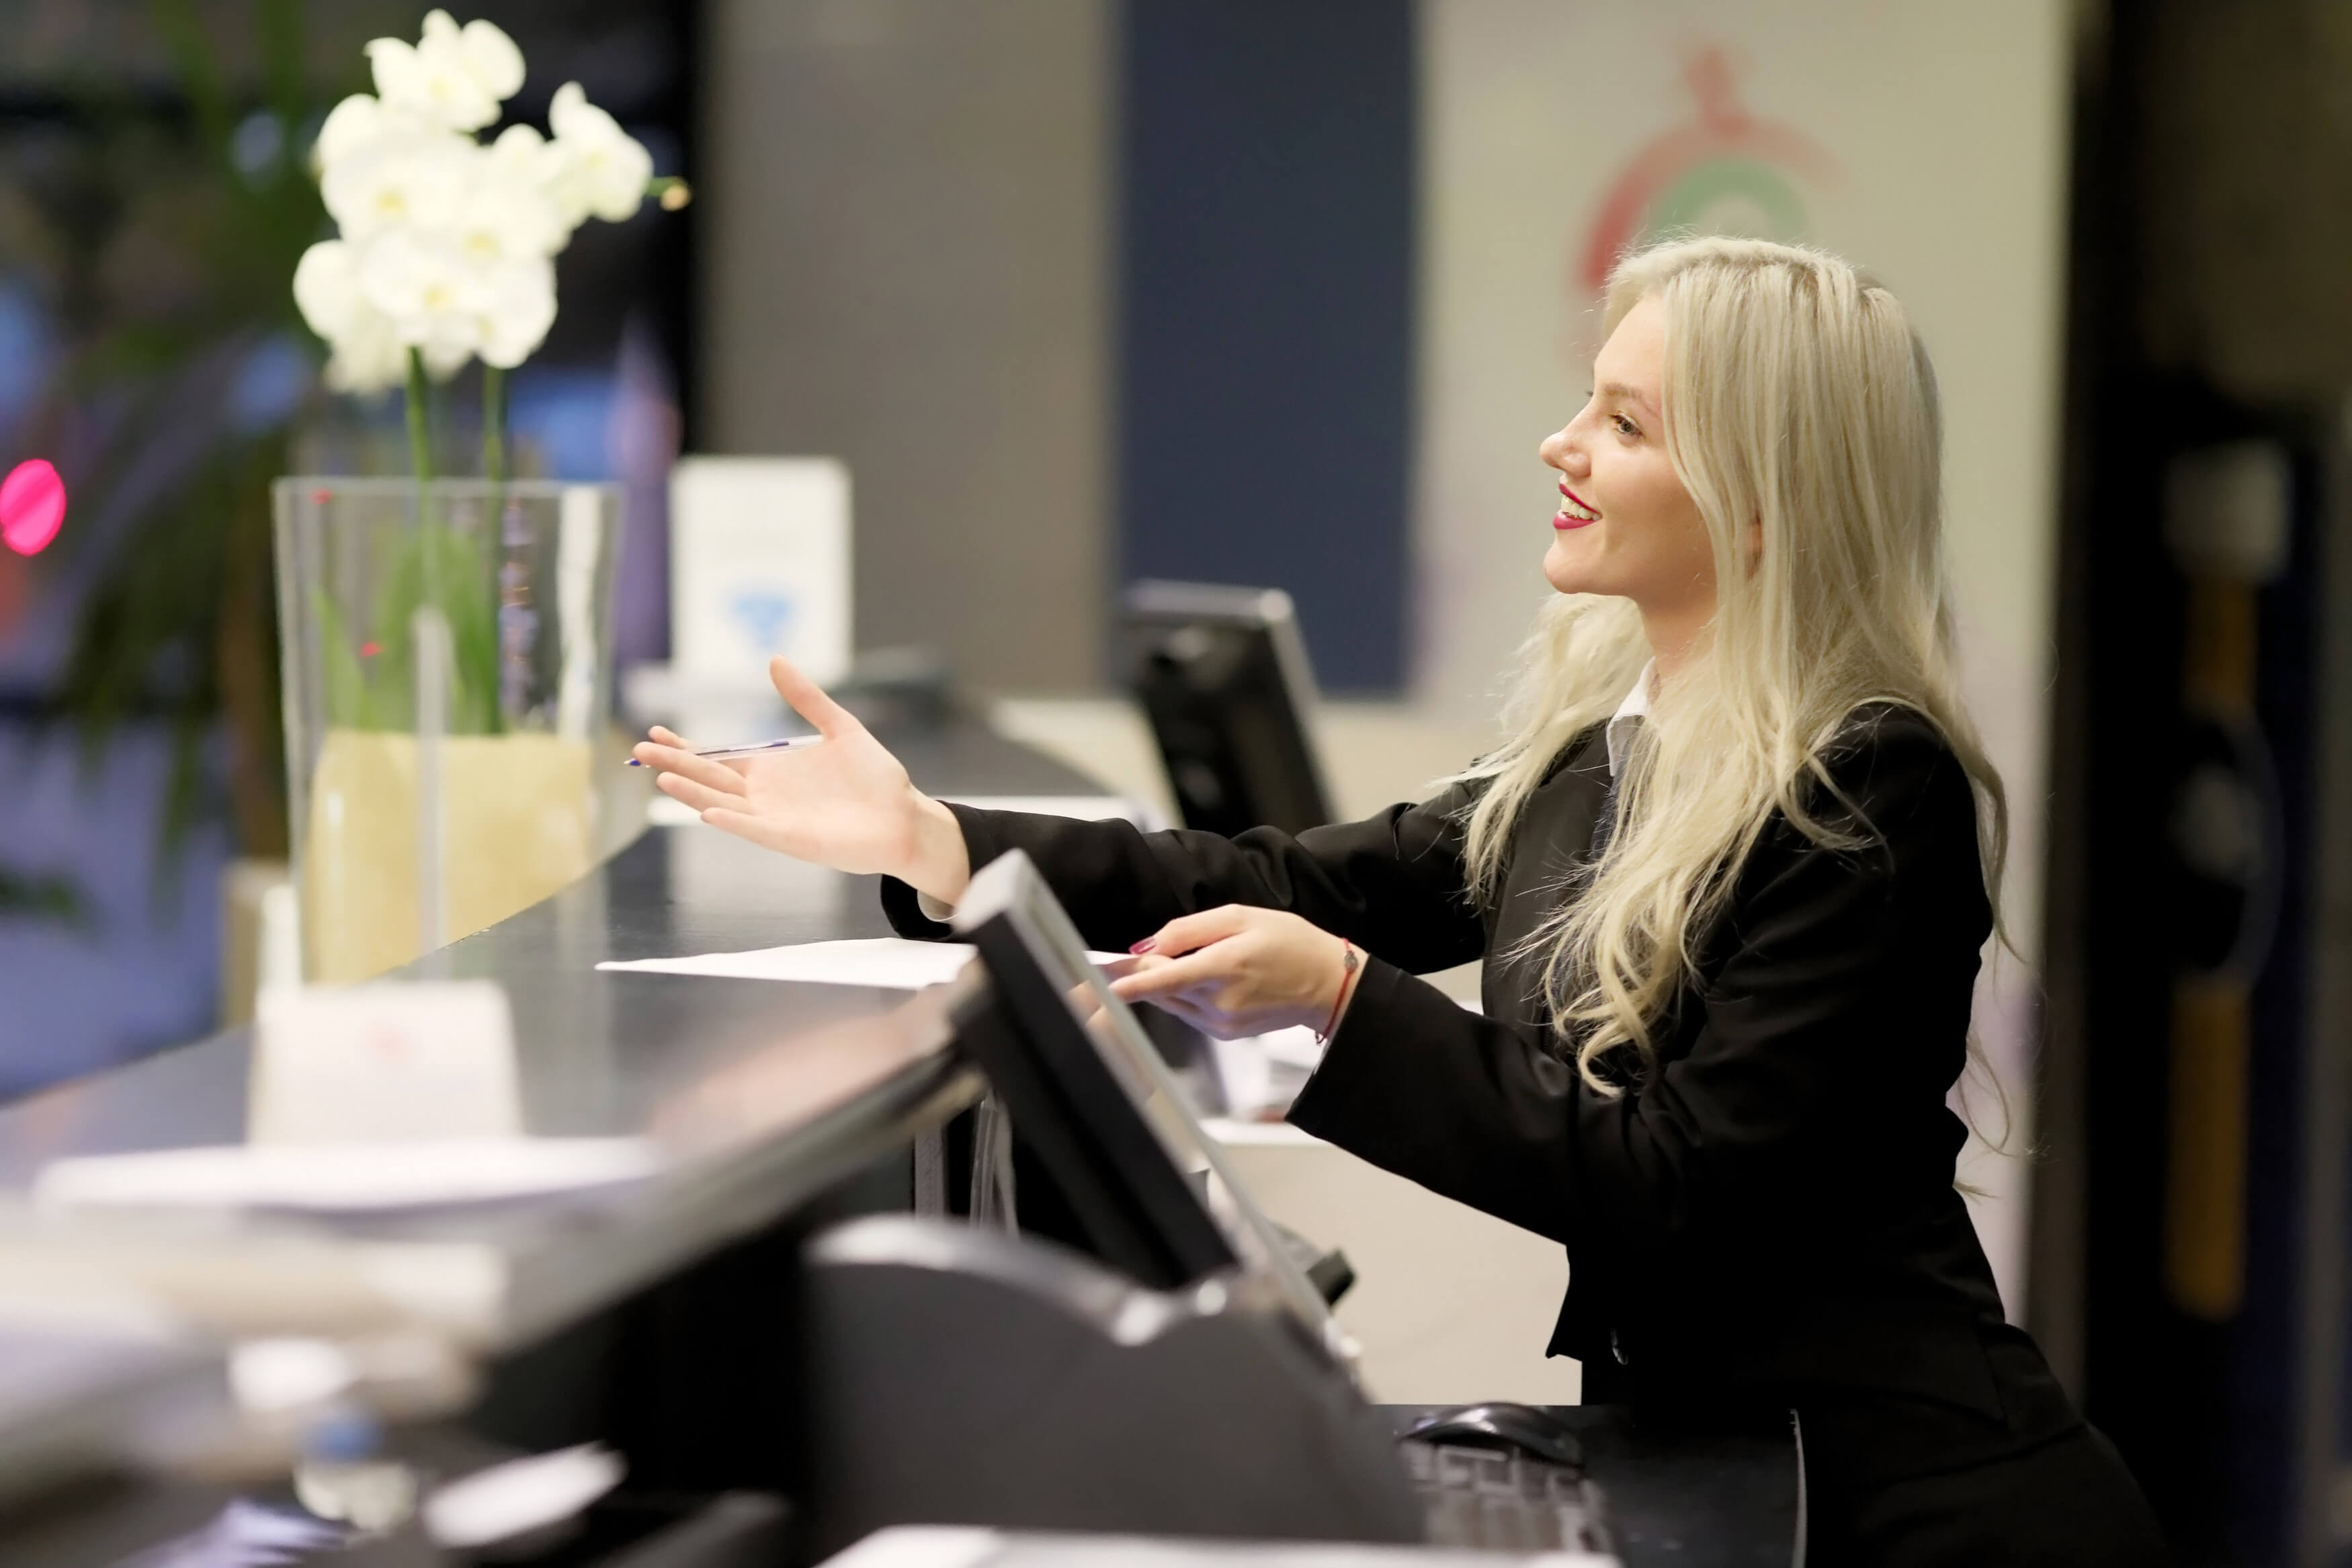 1st class protection blond girl concierge greeting from fron desk